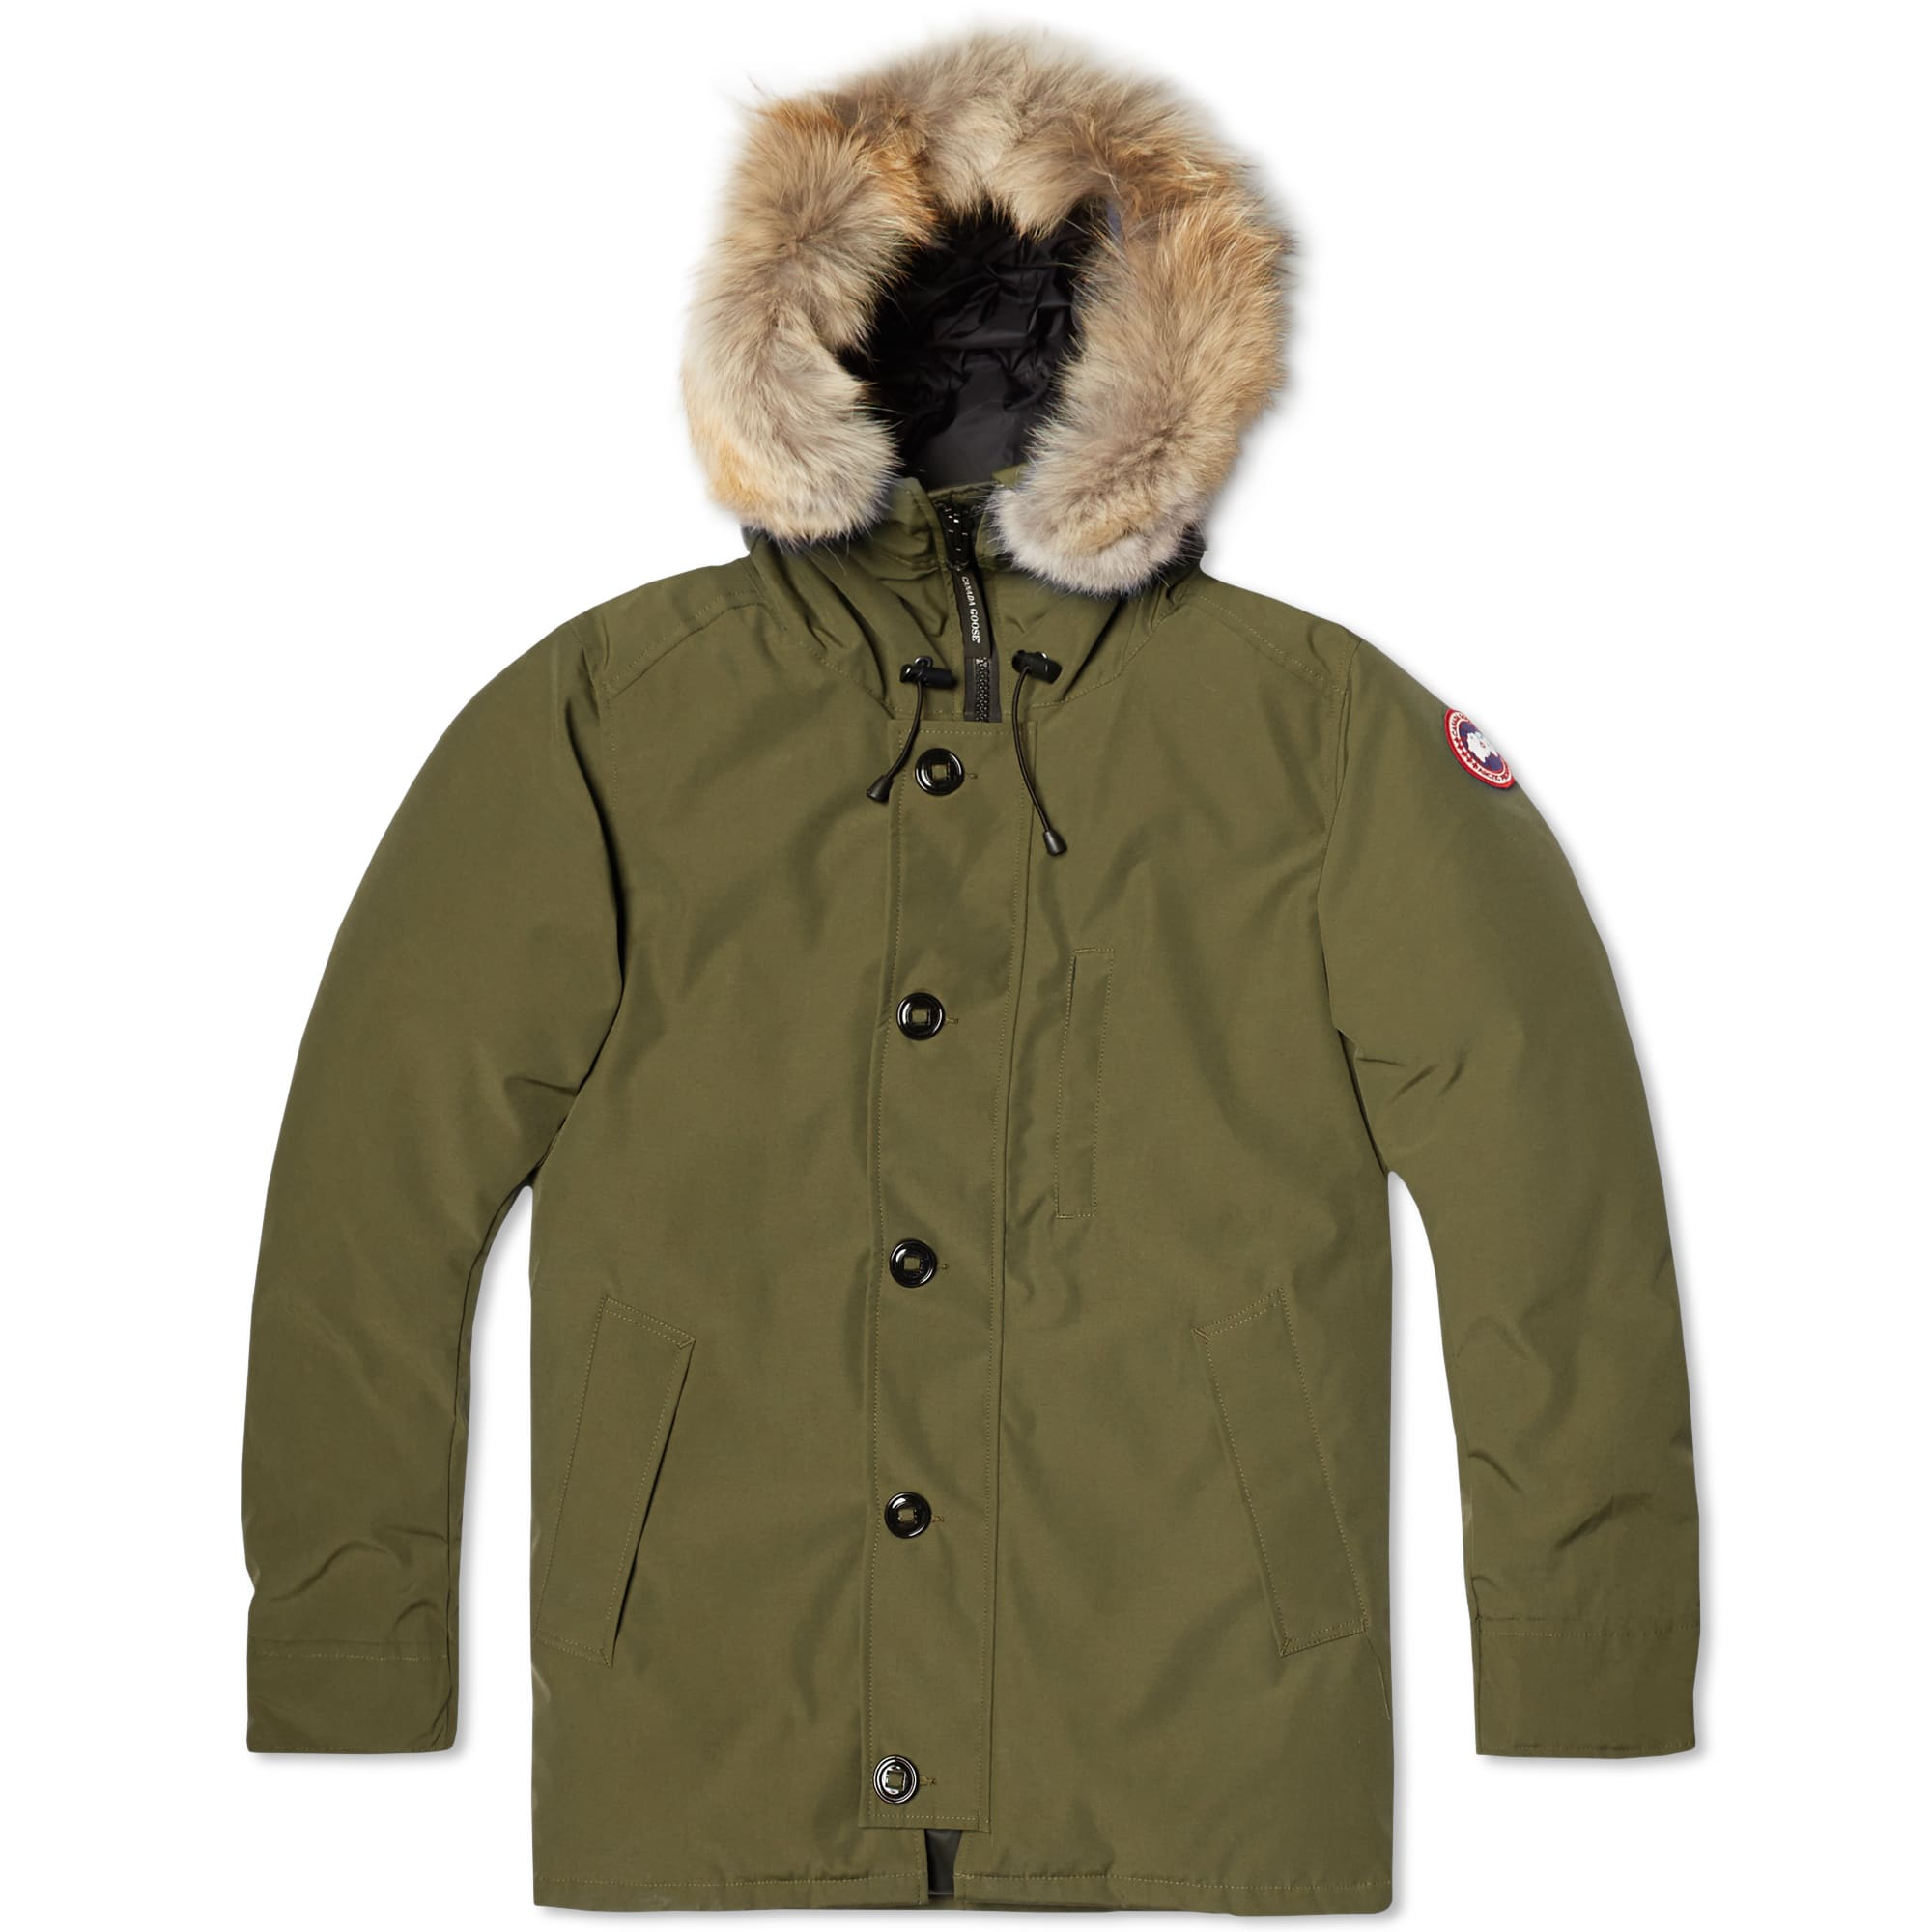 Canada Goose' outlet mall